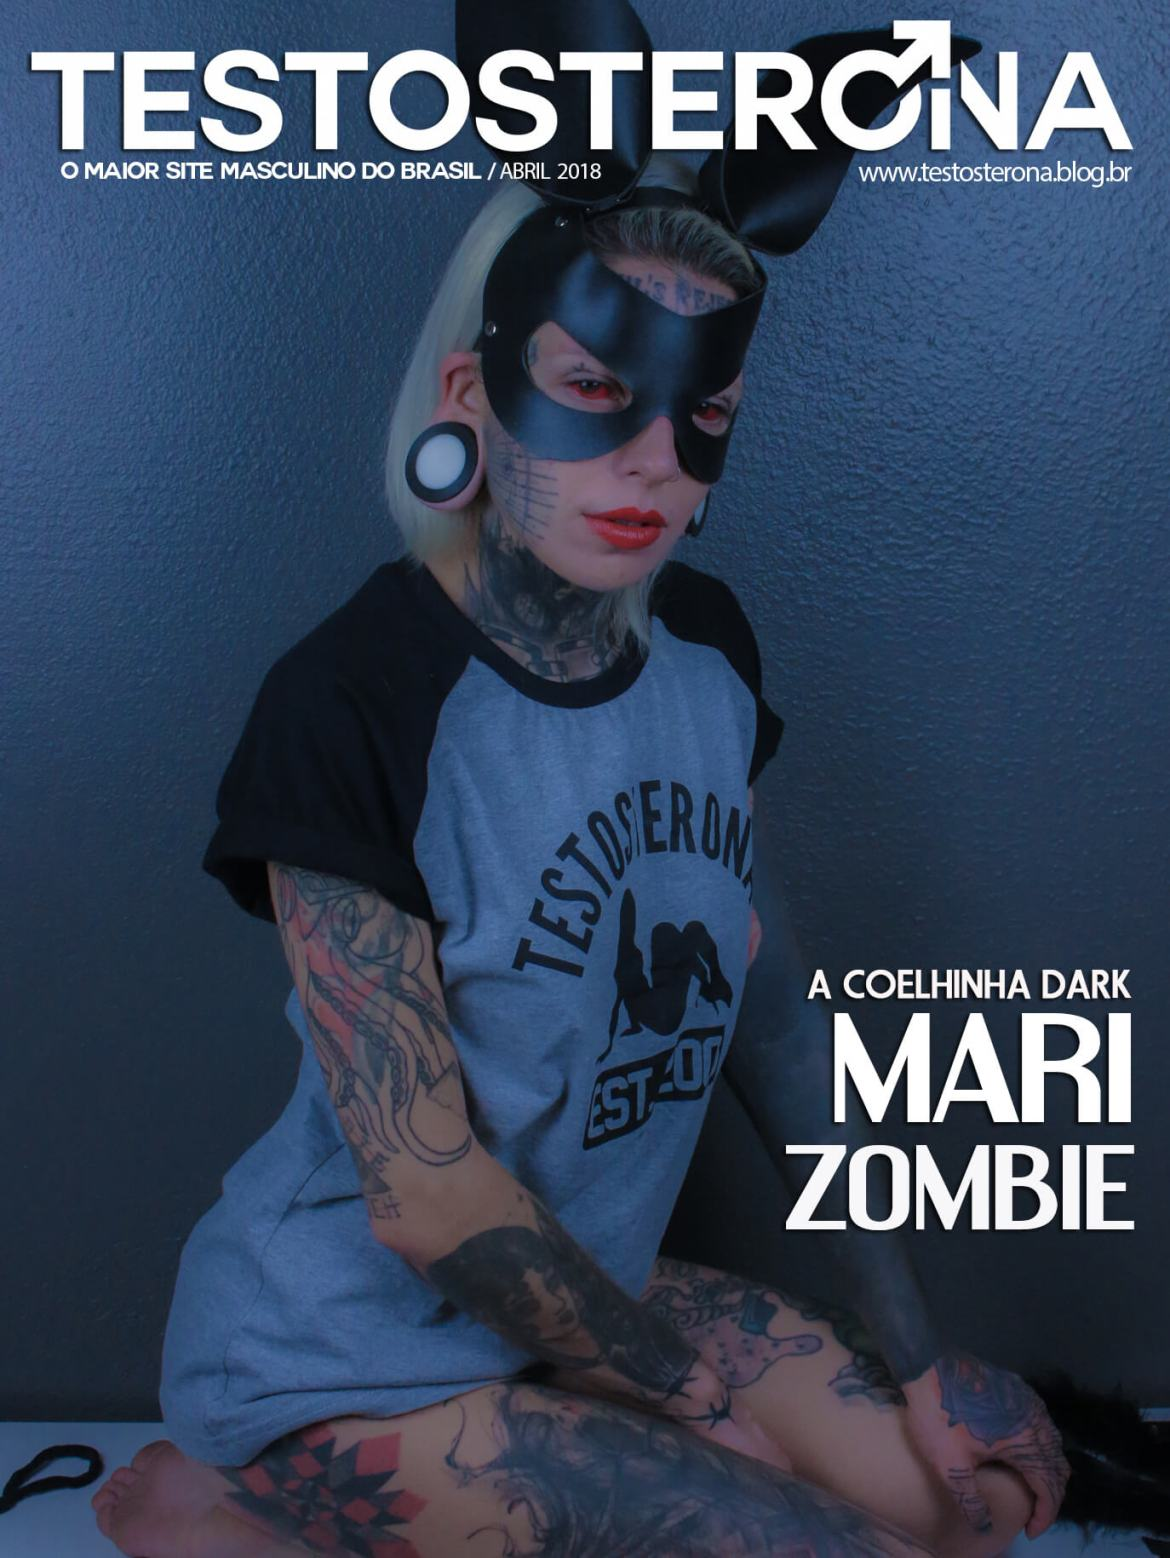 Mari Zombie Testosterona Girls